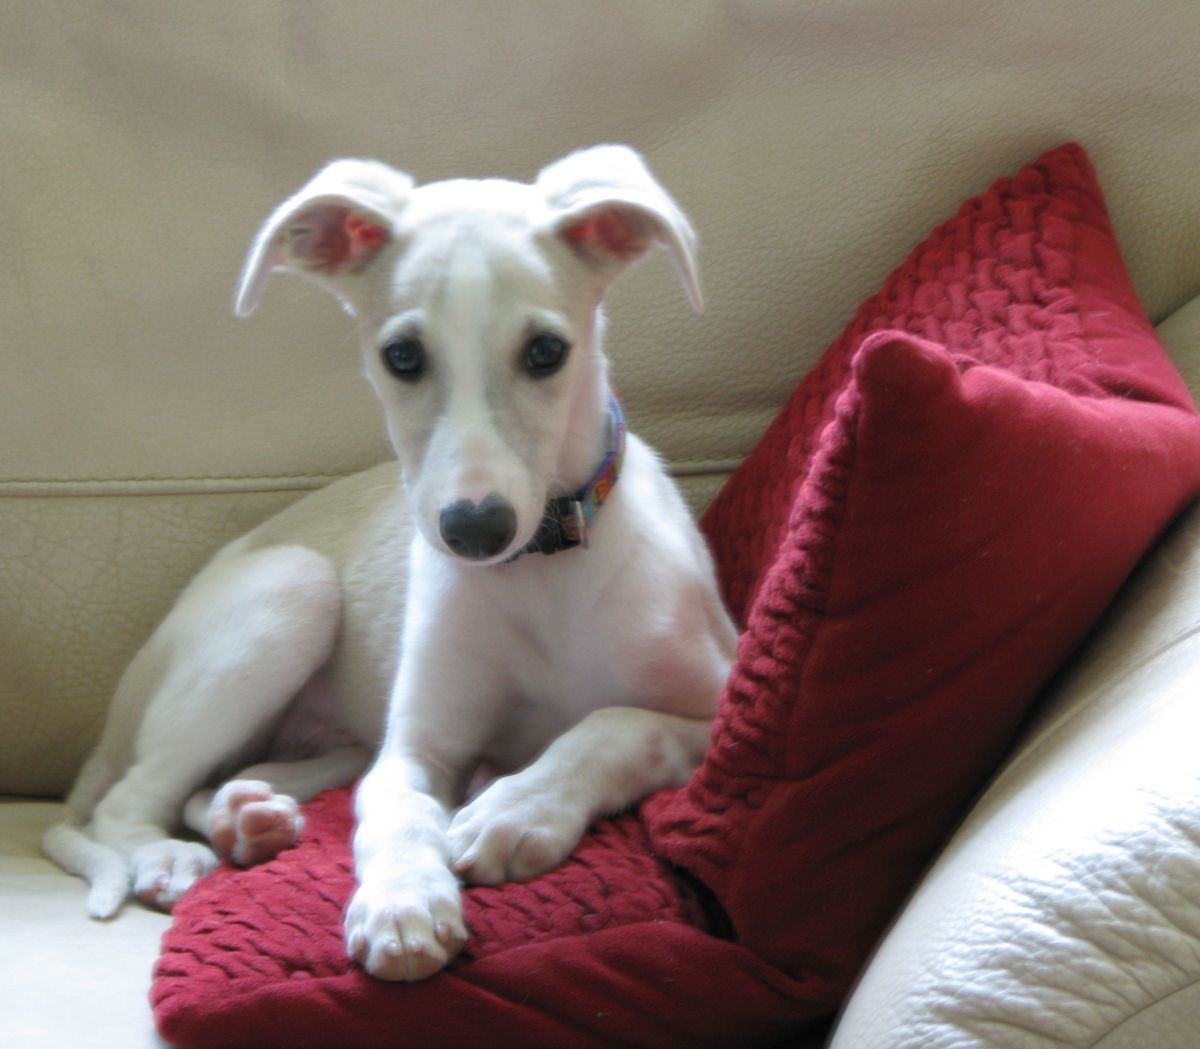 AKC whippet puppies for sale. Four males and one female